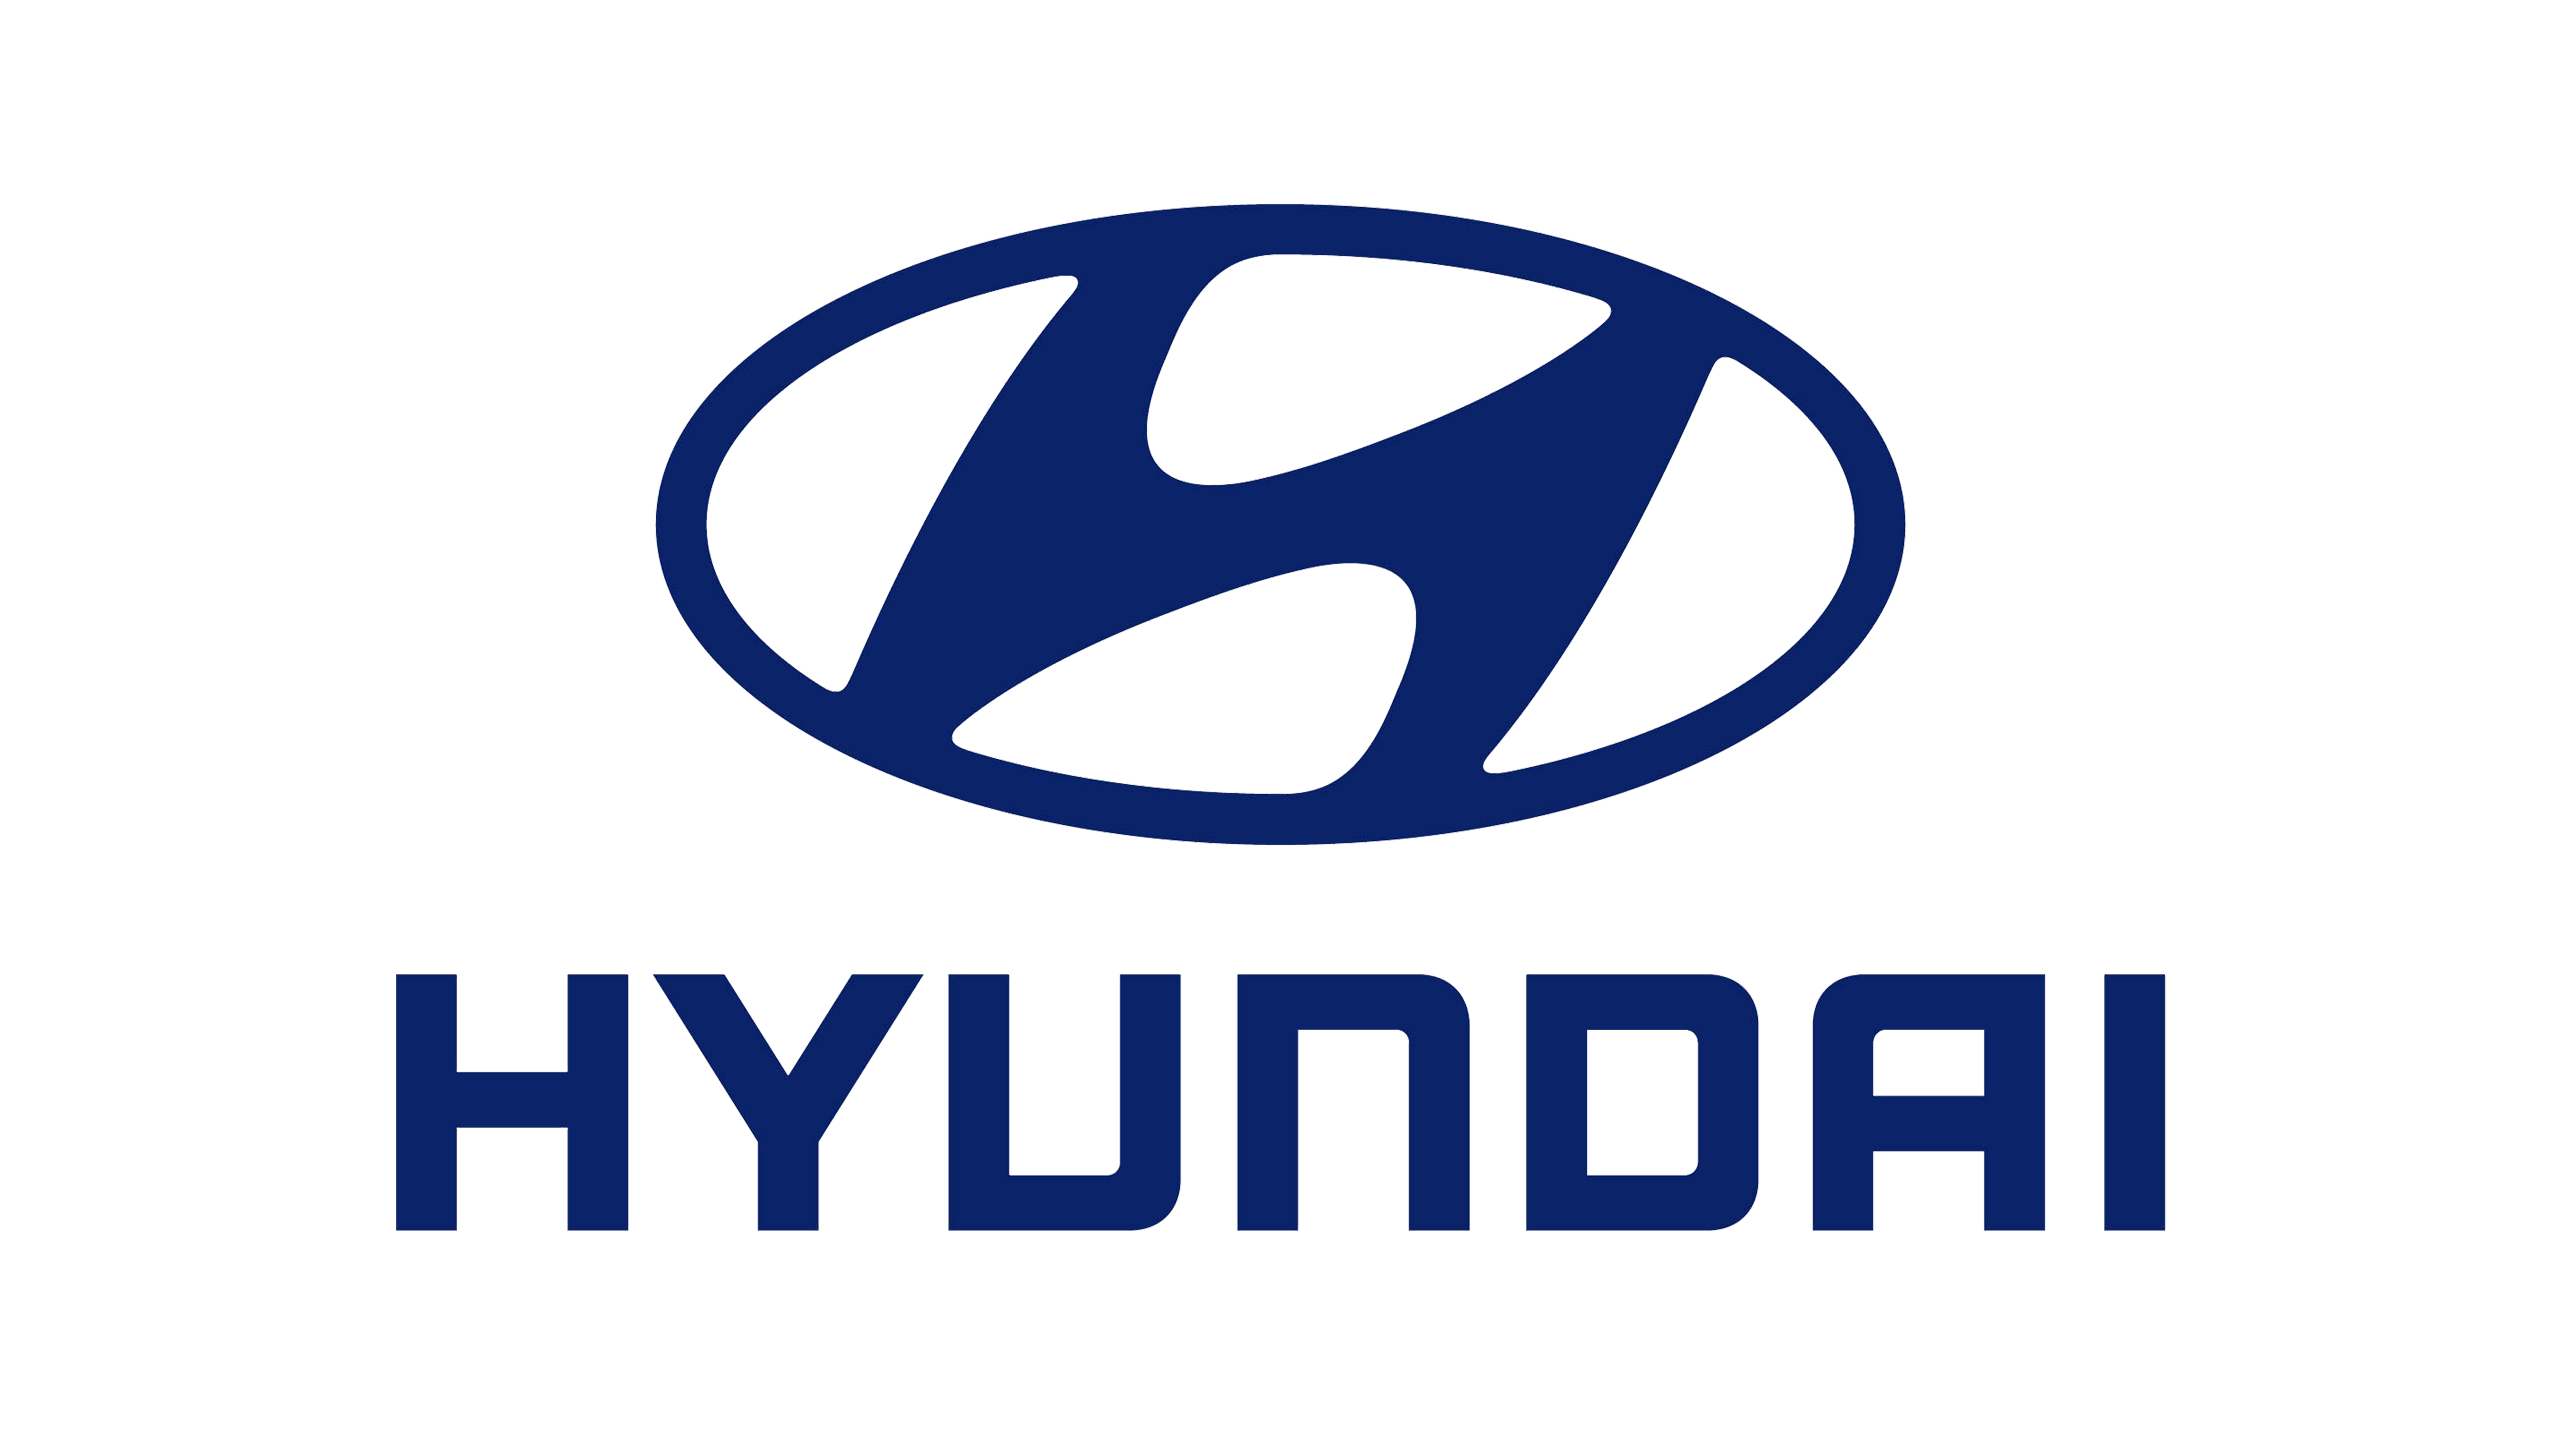 St. Cloud Hyundai